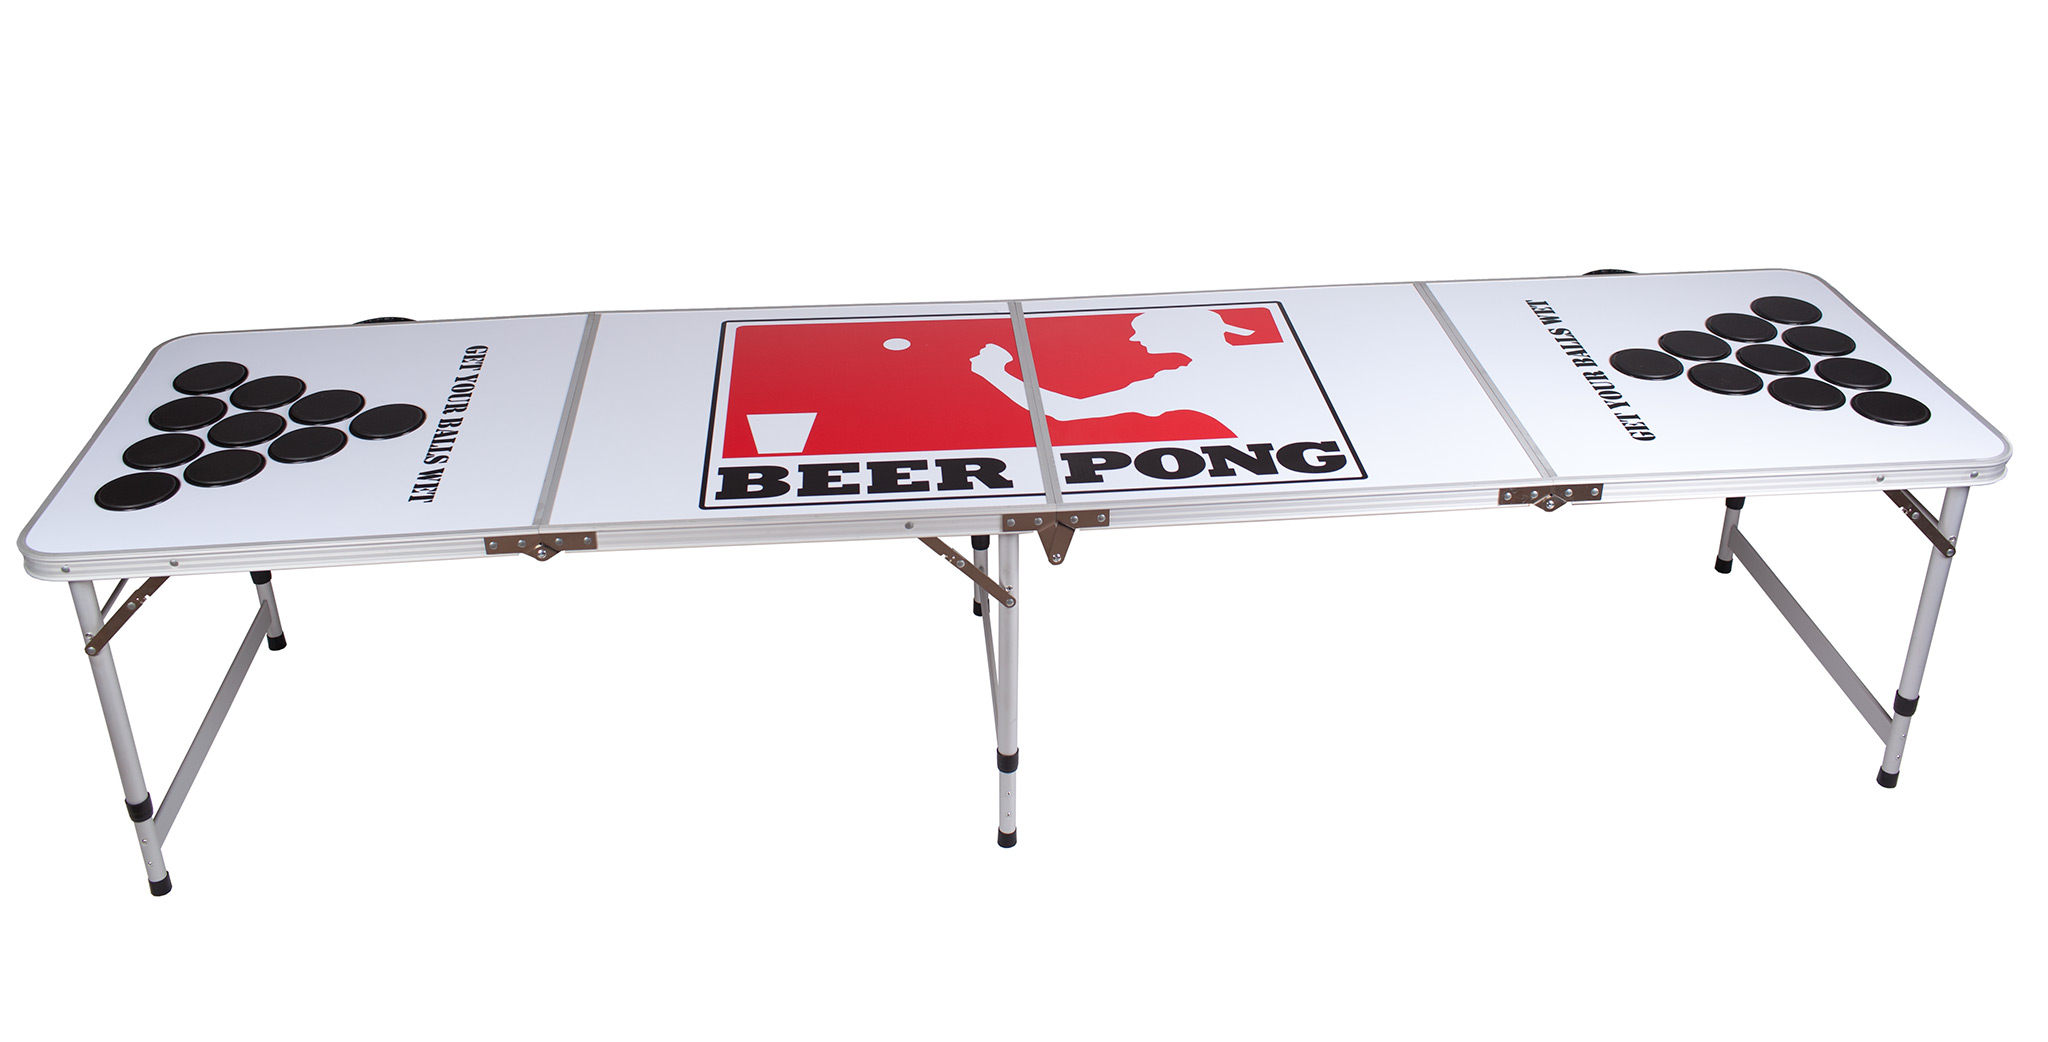 New 8 foot professional beer pong table aluminum party games cup holes 4 ebay - Professional beer pong table ...